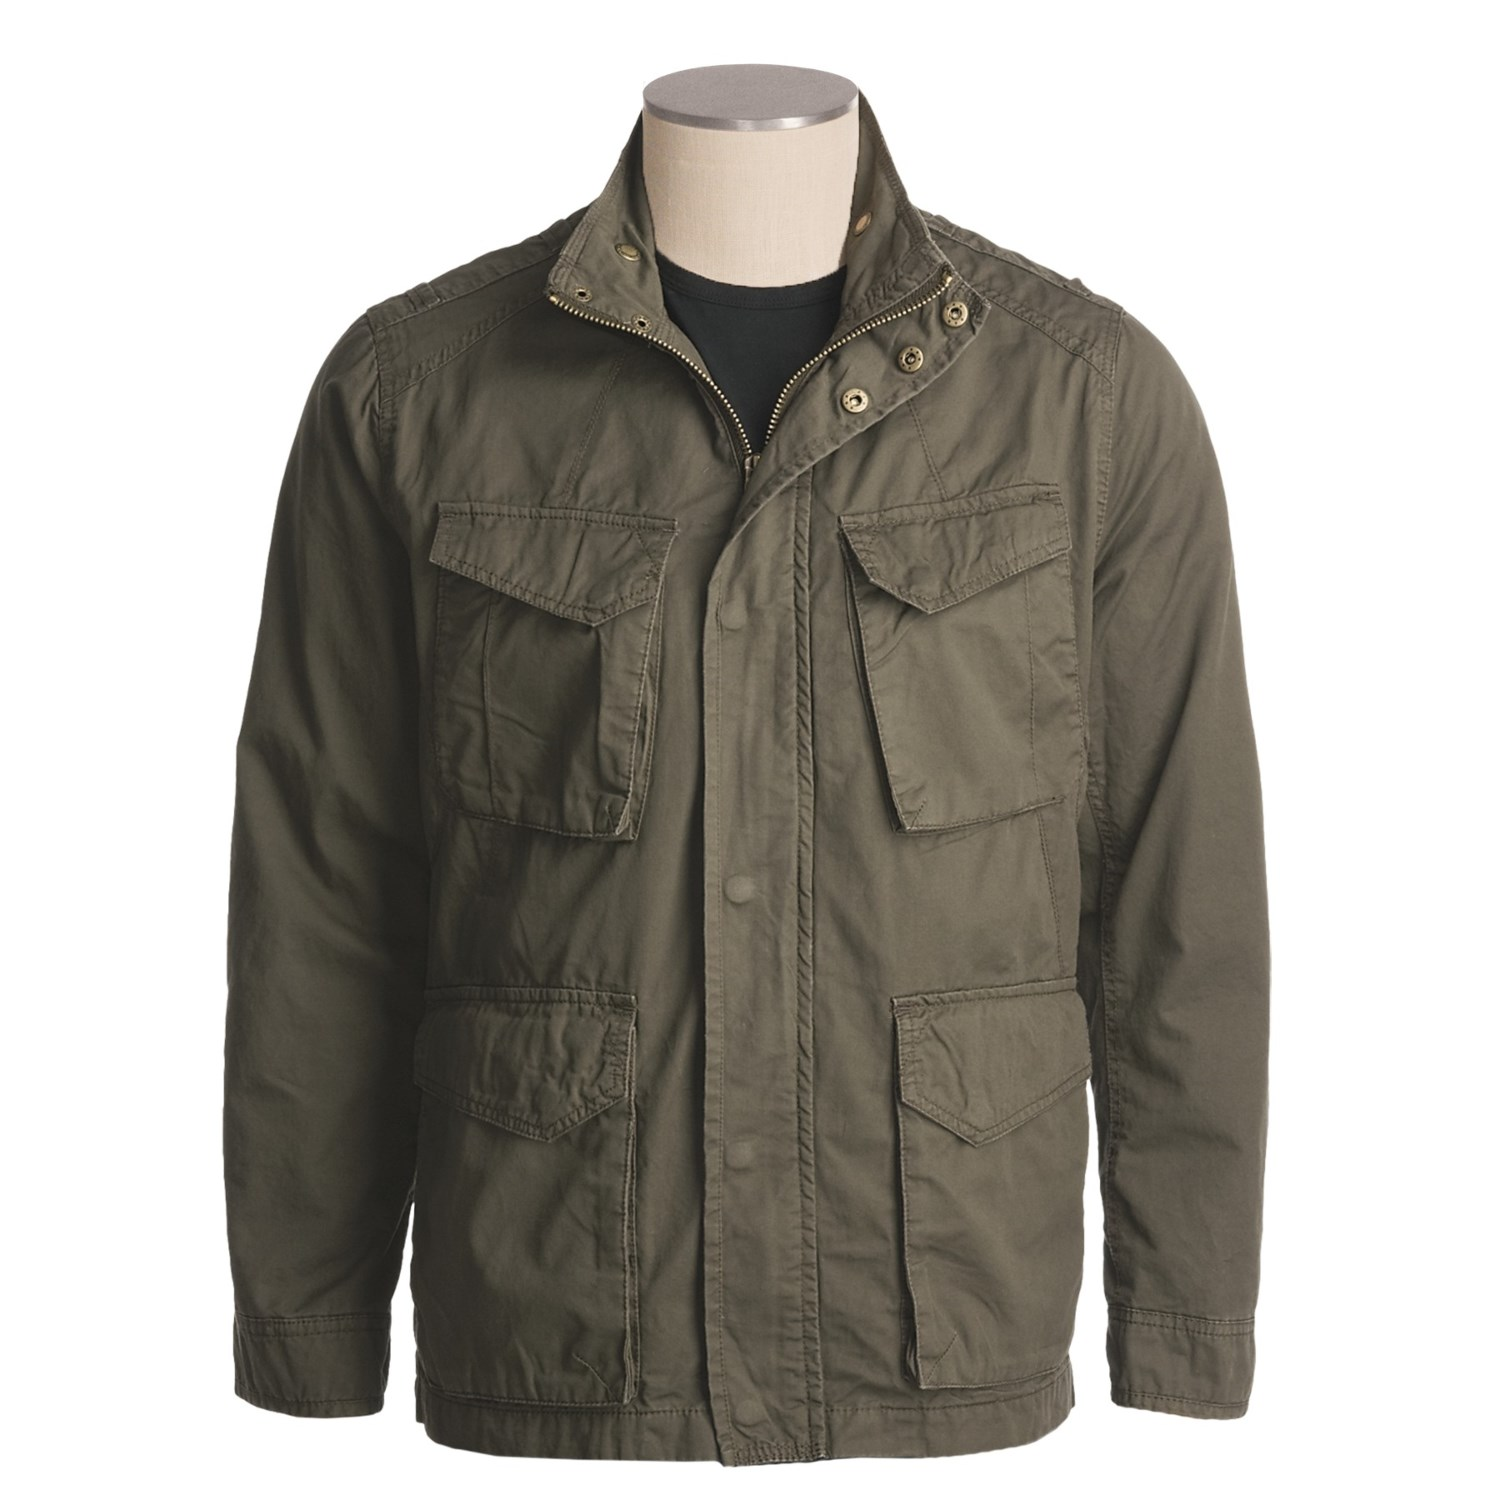 Find mens military jacket at ShopStyle. Shop the latest collection of mens military jacket from the most popular stores - all in one place.